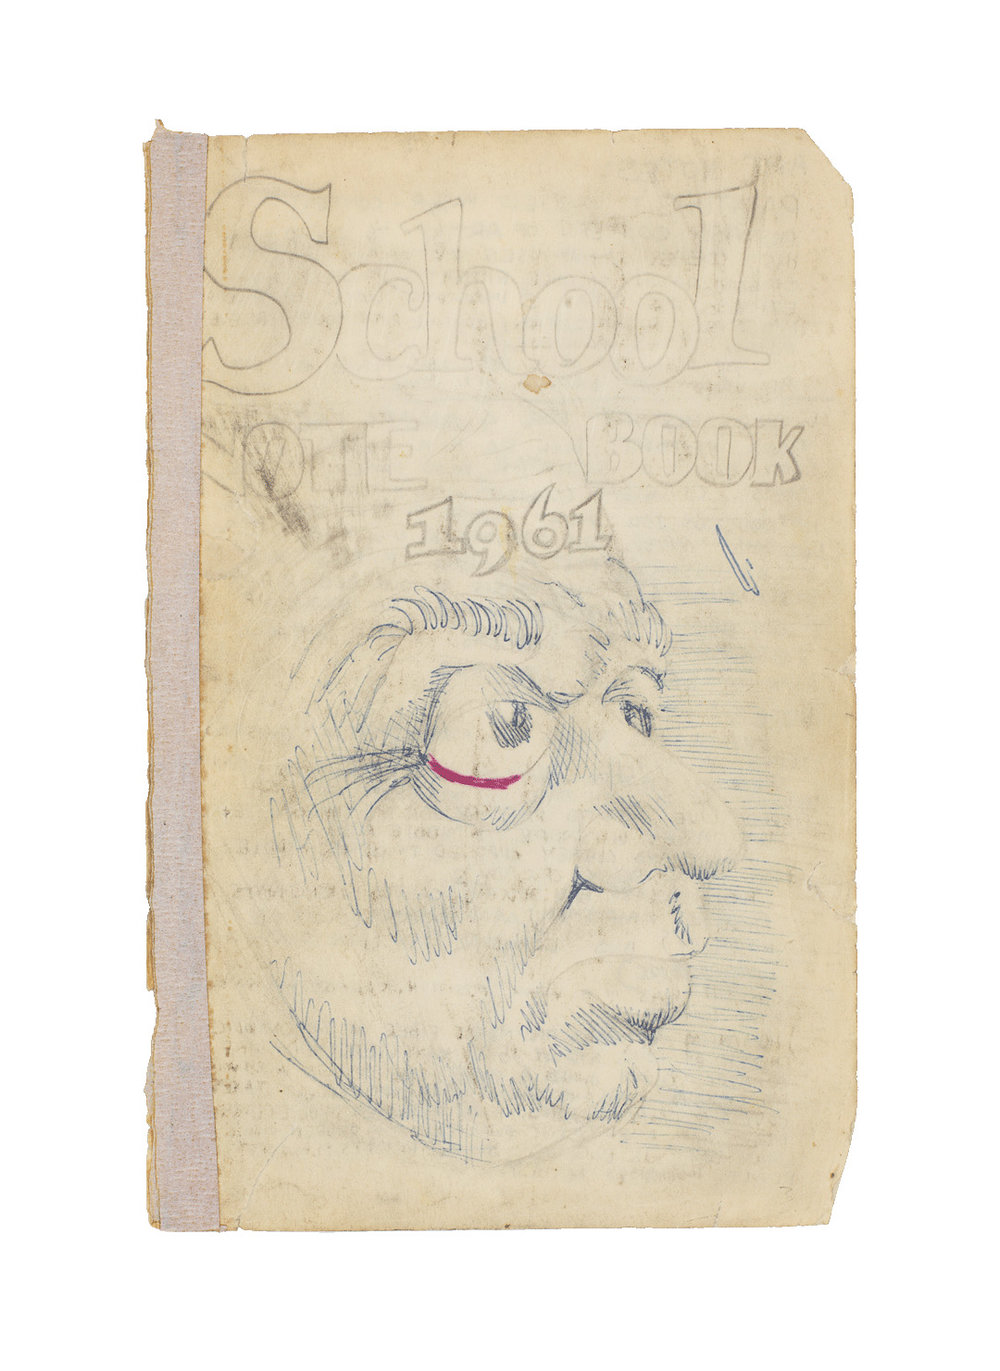 Robert Crumb, 'Untitled (School Notebook 1961 pg. 3/4', 1961. Image courtesy of the artist, Paul Morris, and David Zwirner.